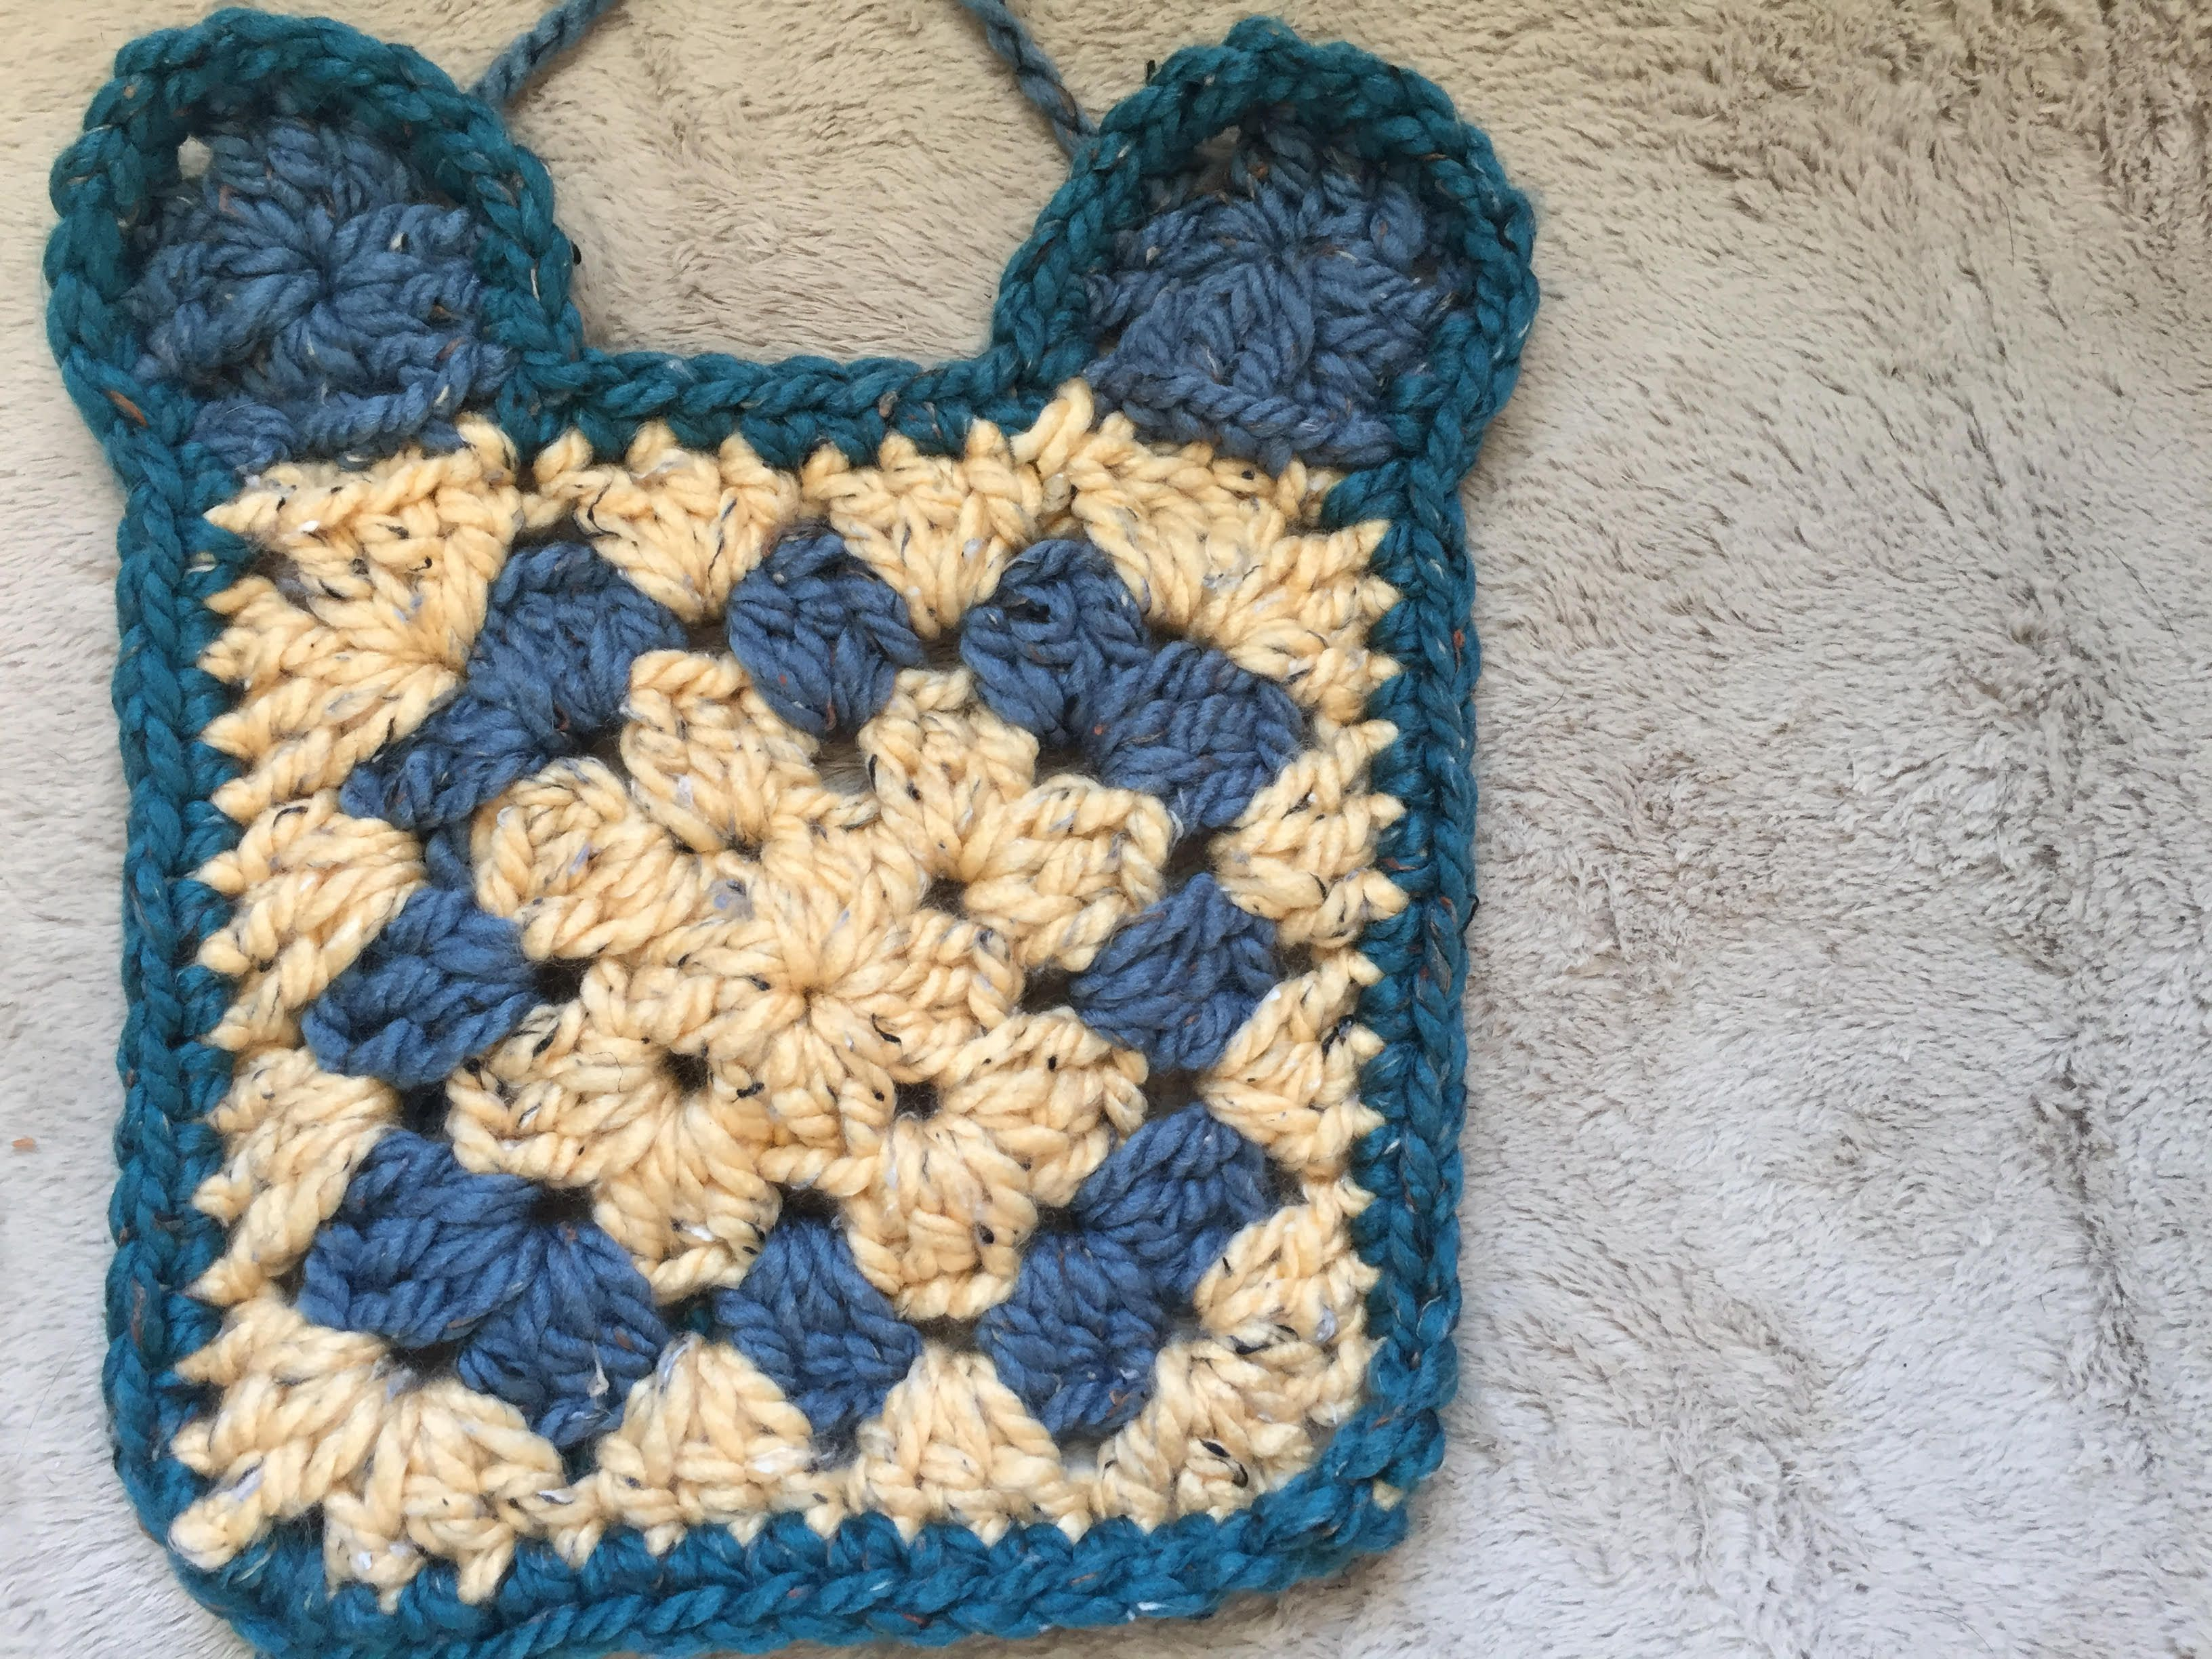 These Crochet Projects Ideas Will Blow Your Mind 25 Free Crochet Patterns For Every Skill Level